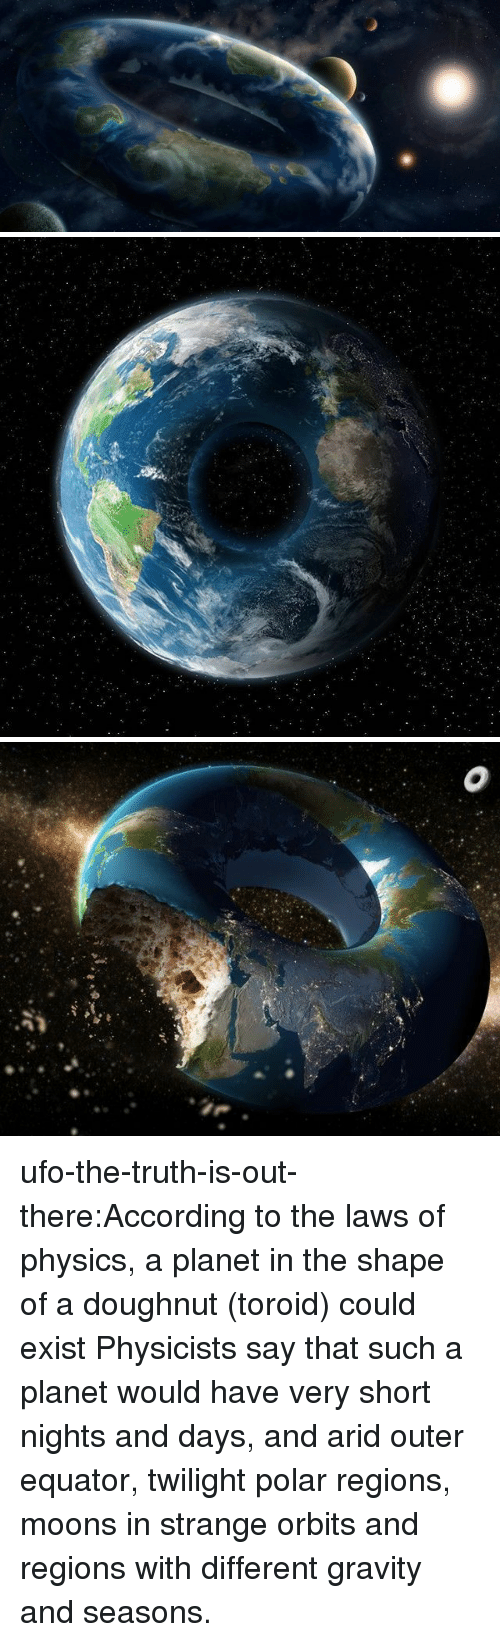 Target, Tumblr, and Blog: ufo-the-truth-is-out-there:According to the laws of physics, a planet in the shape of a doughnut (toroid) could exist Physicists say that such a planet would have very short nights and days, and arid outer equator, twilight polar regions, moons in strange orbits and regions with different gravity and seasons.